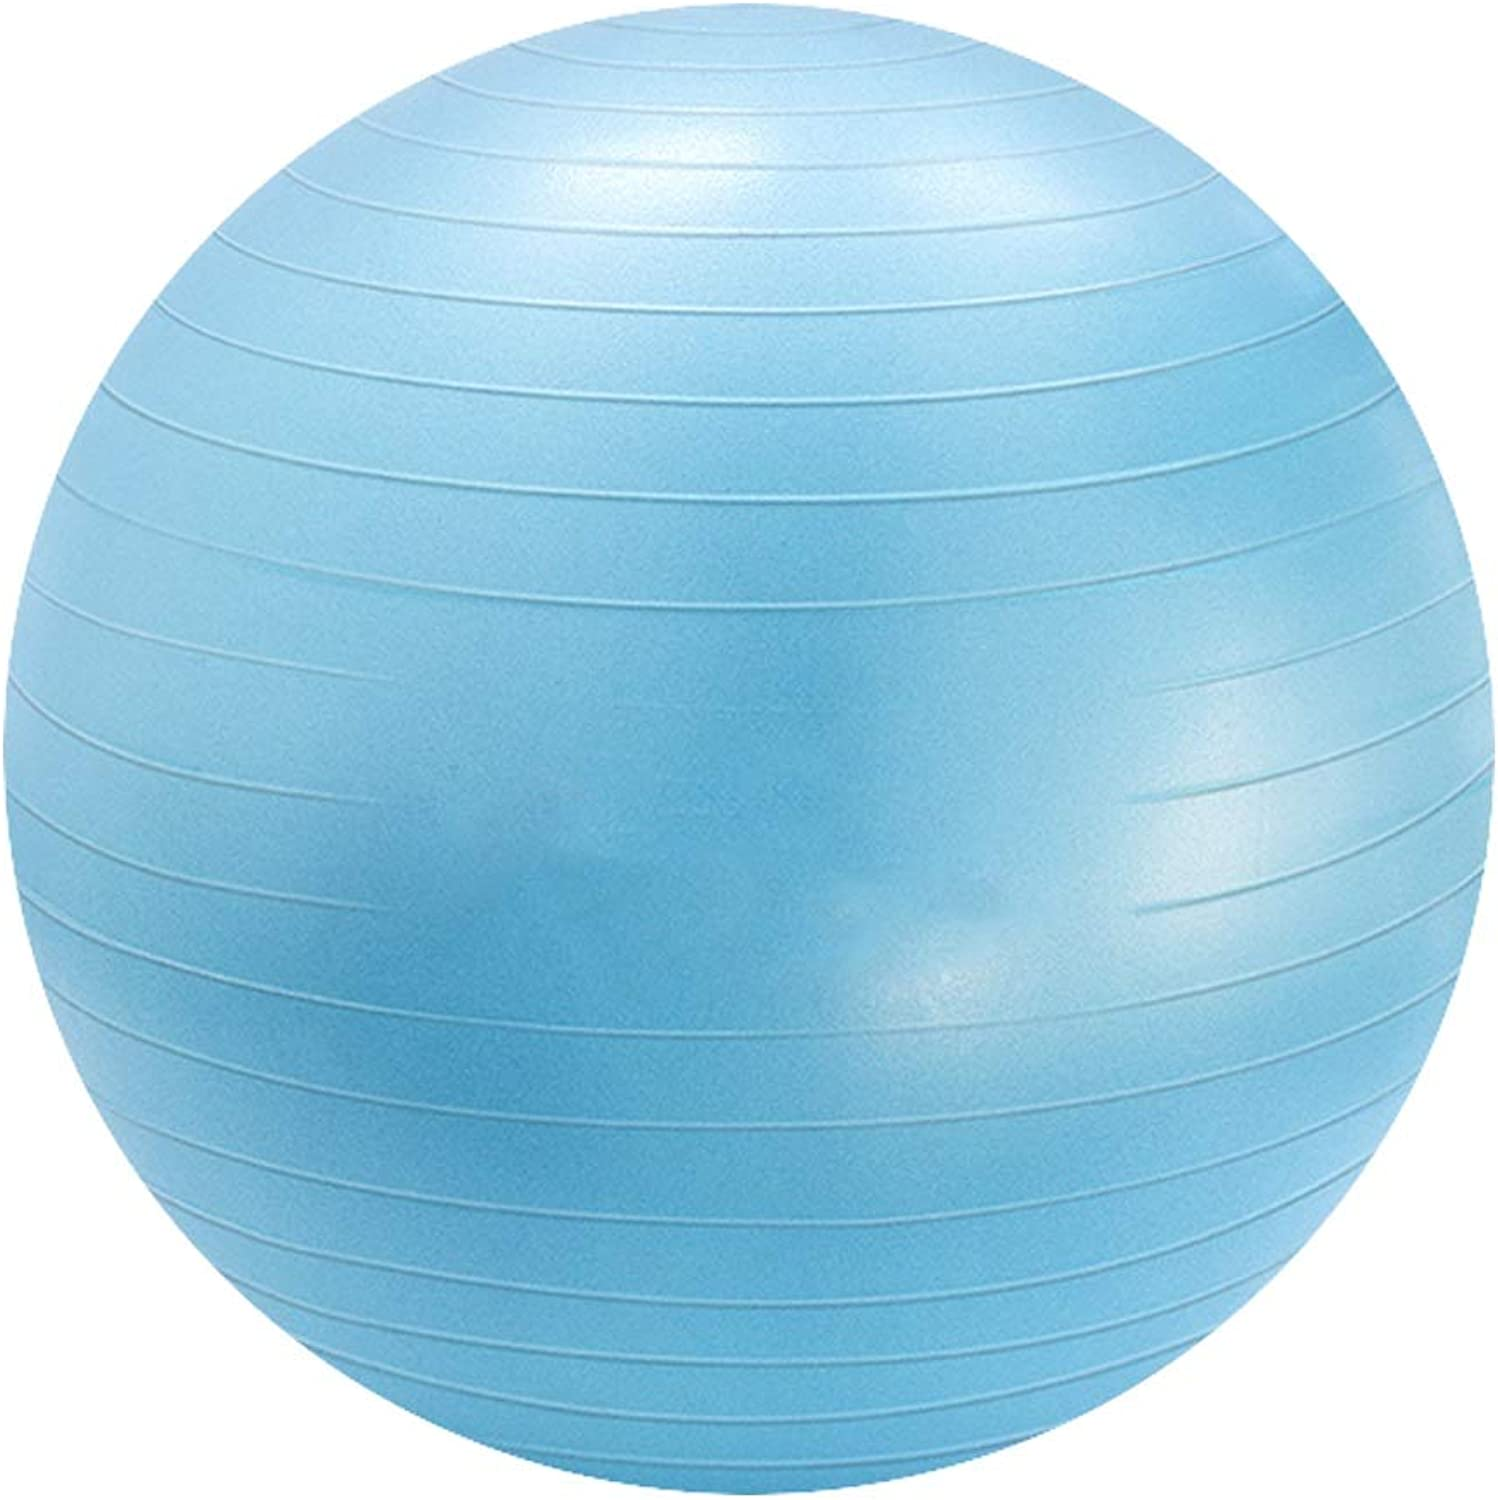 Yoga Ball AntiBurst Exercise Ball Exercise Gym Ball Pregnancy Beginner Office Home Gym Balance Workout Fitness Available in Two Sizes 65 75cm